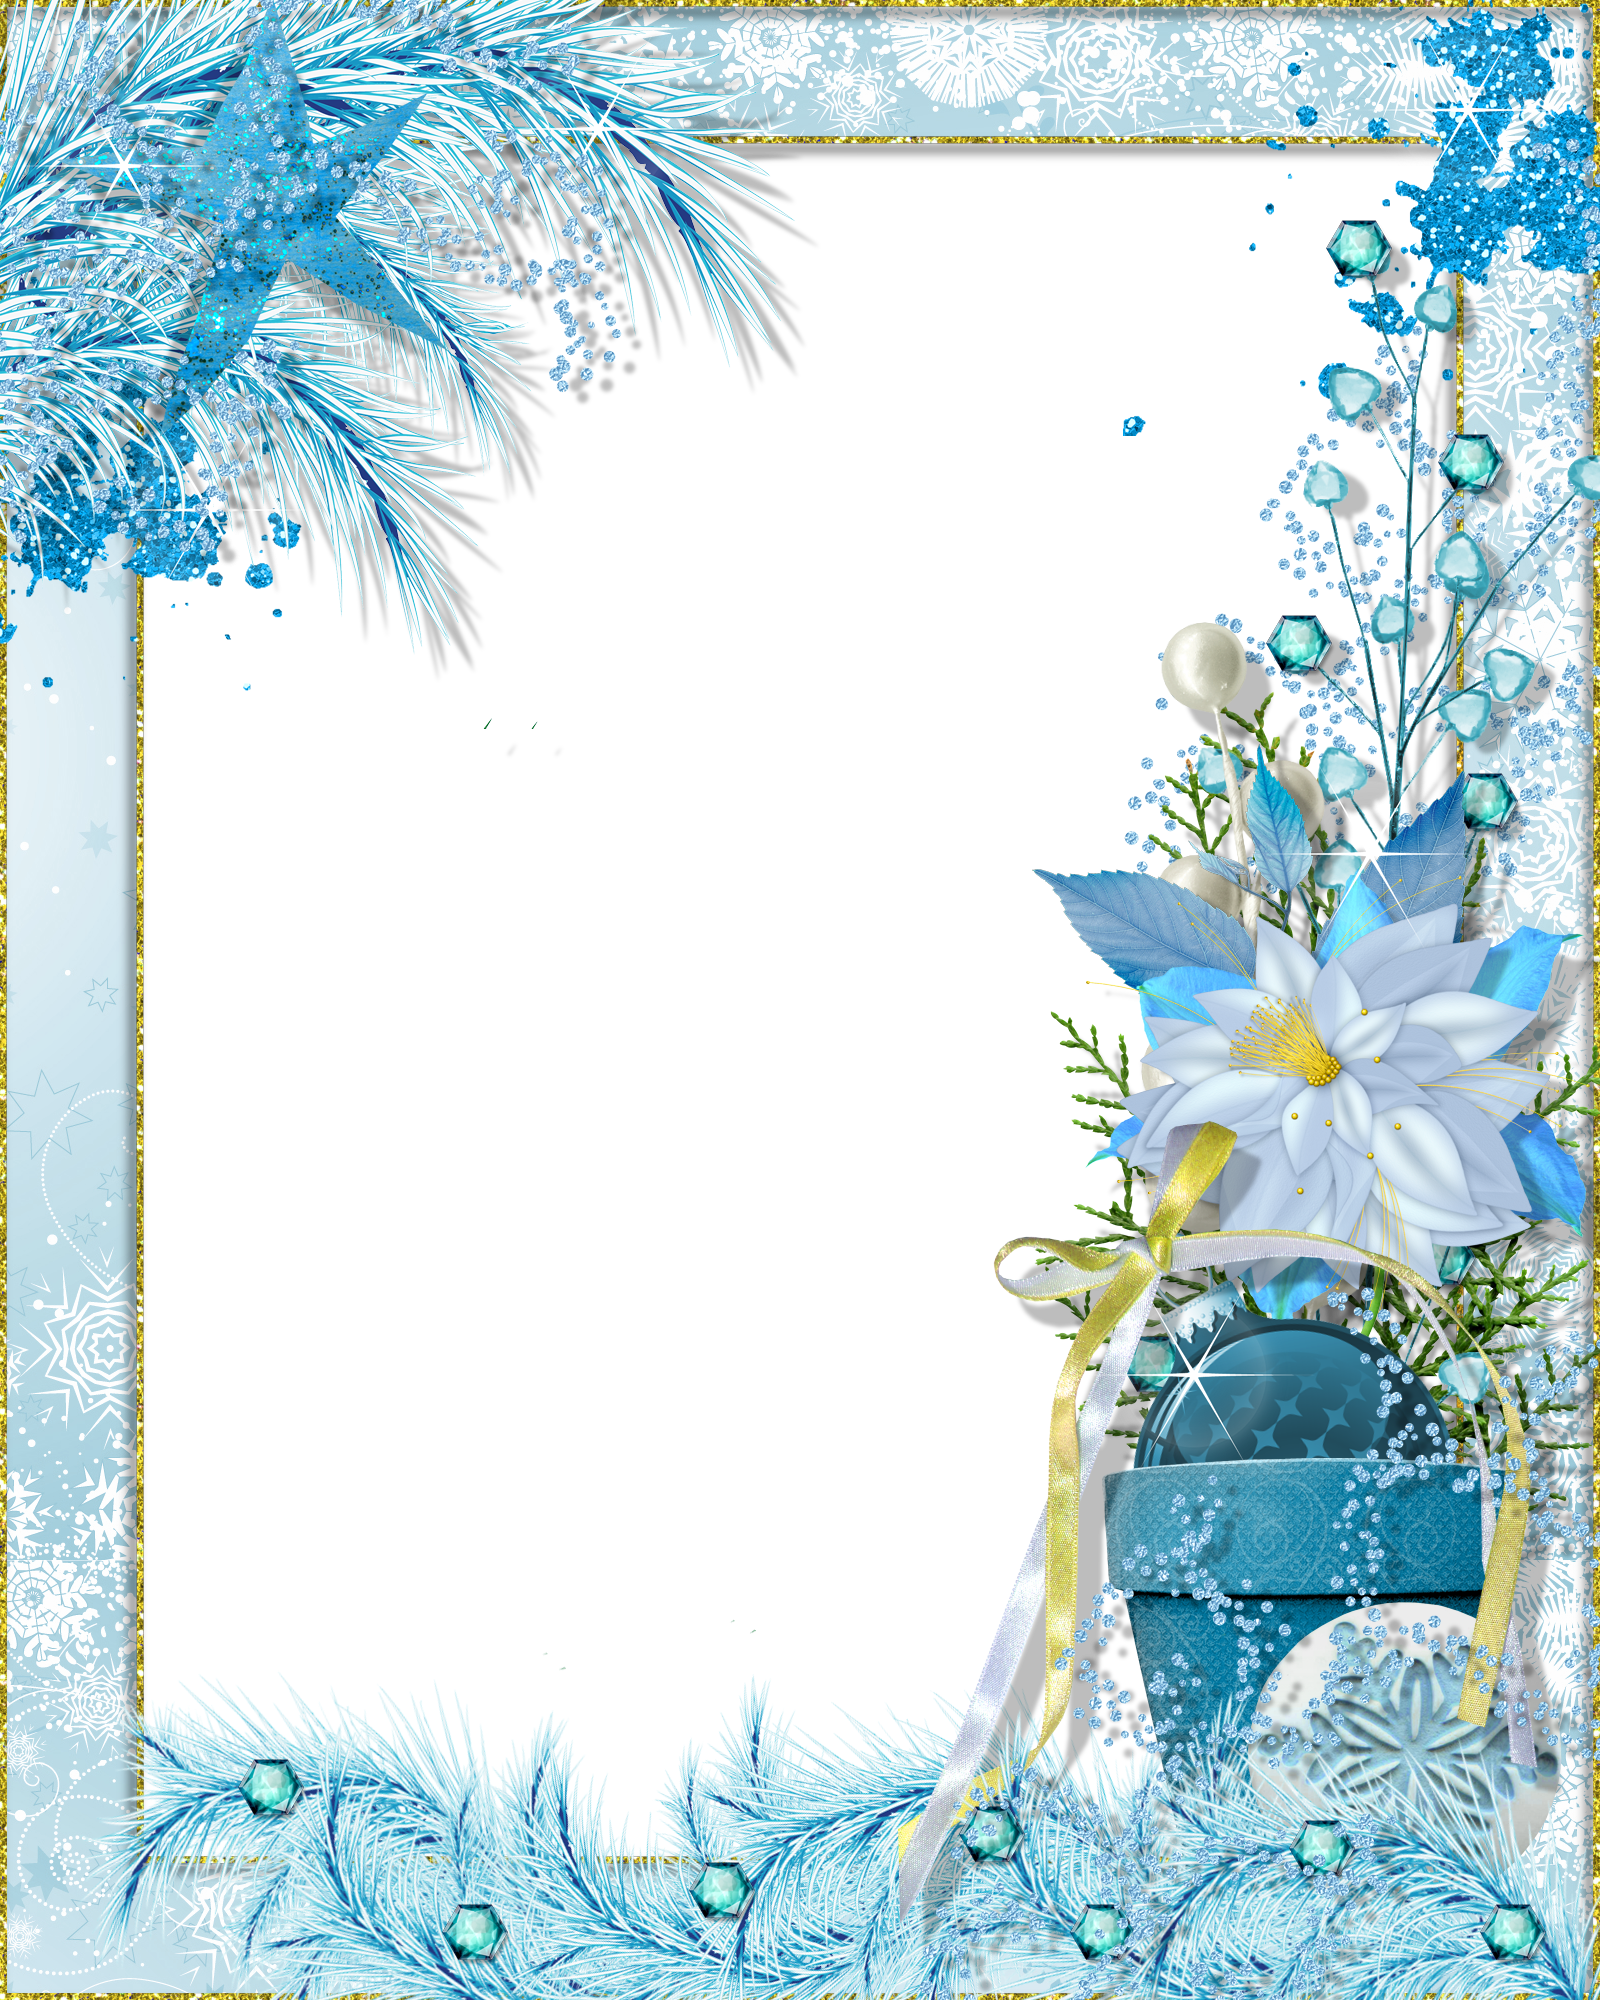 Transparent png photo fantasy. Clipart winter frame